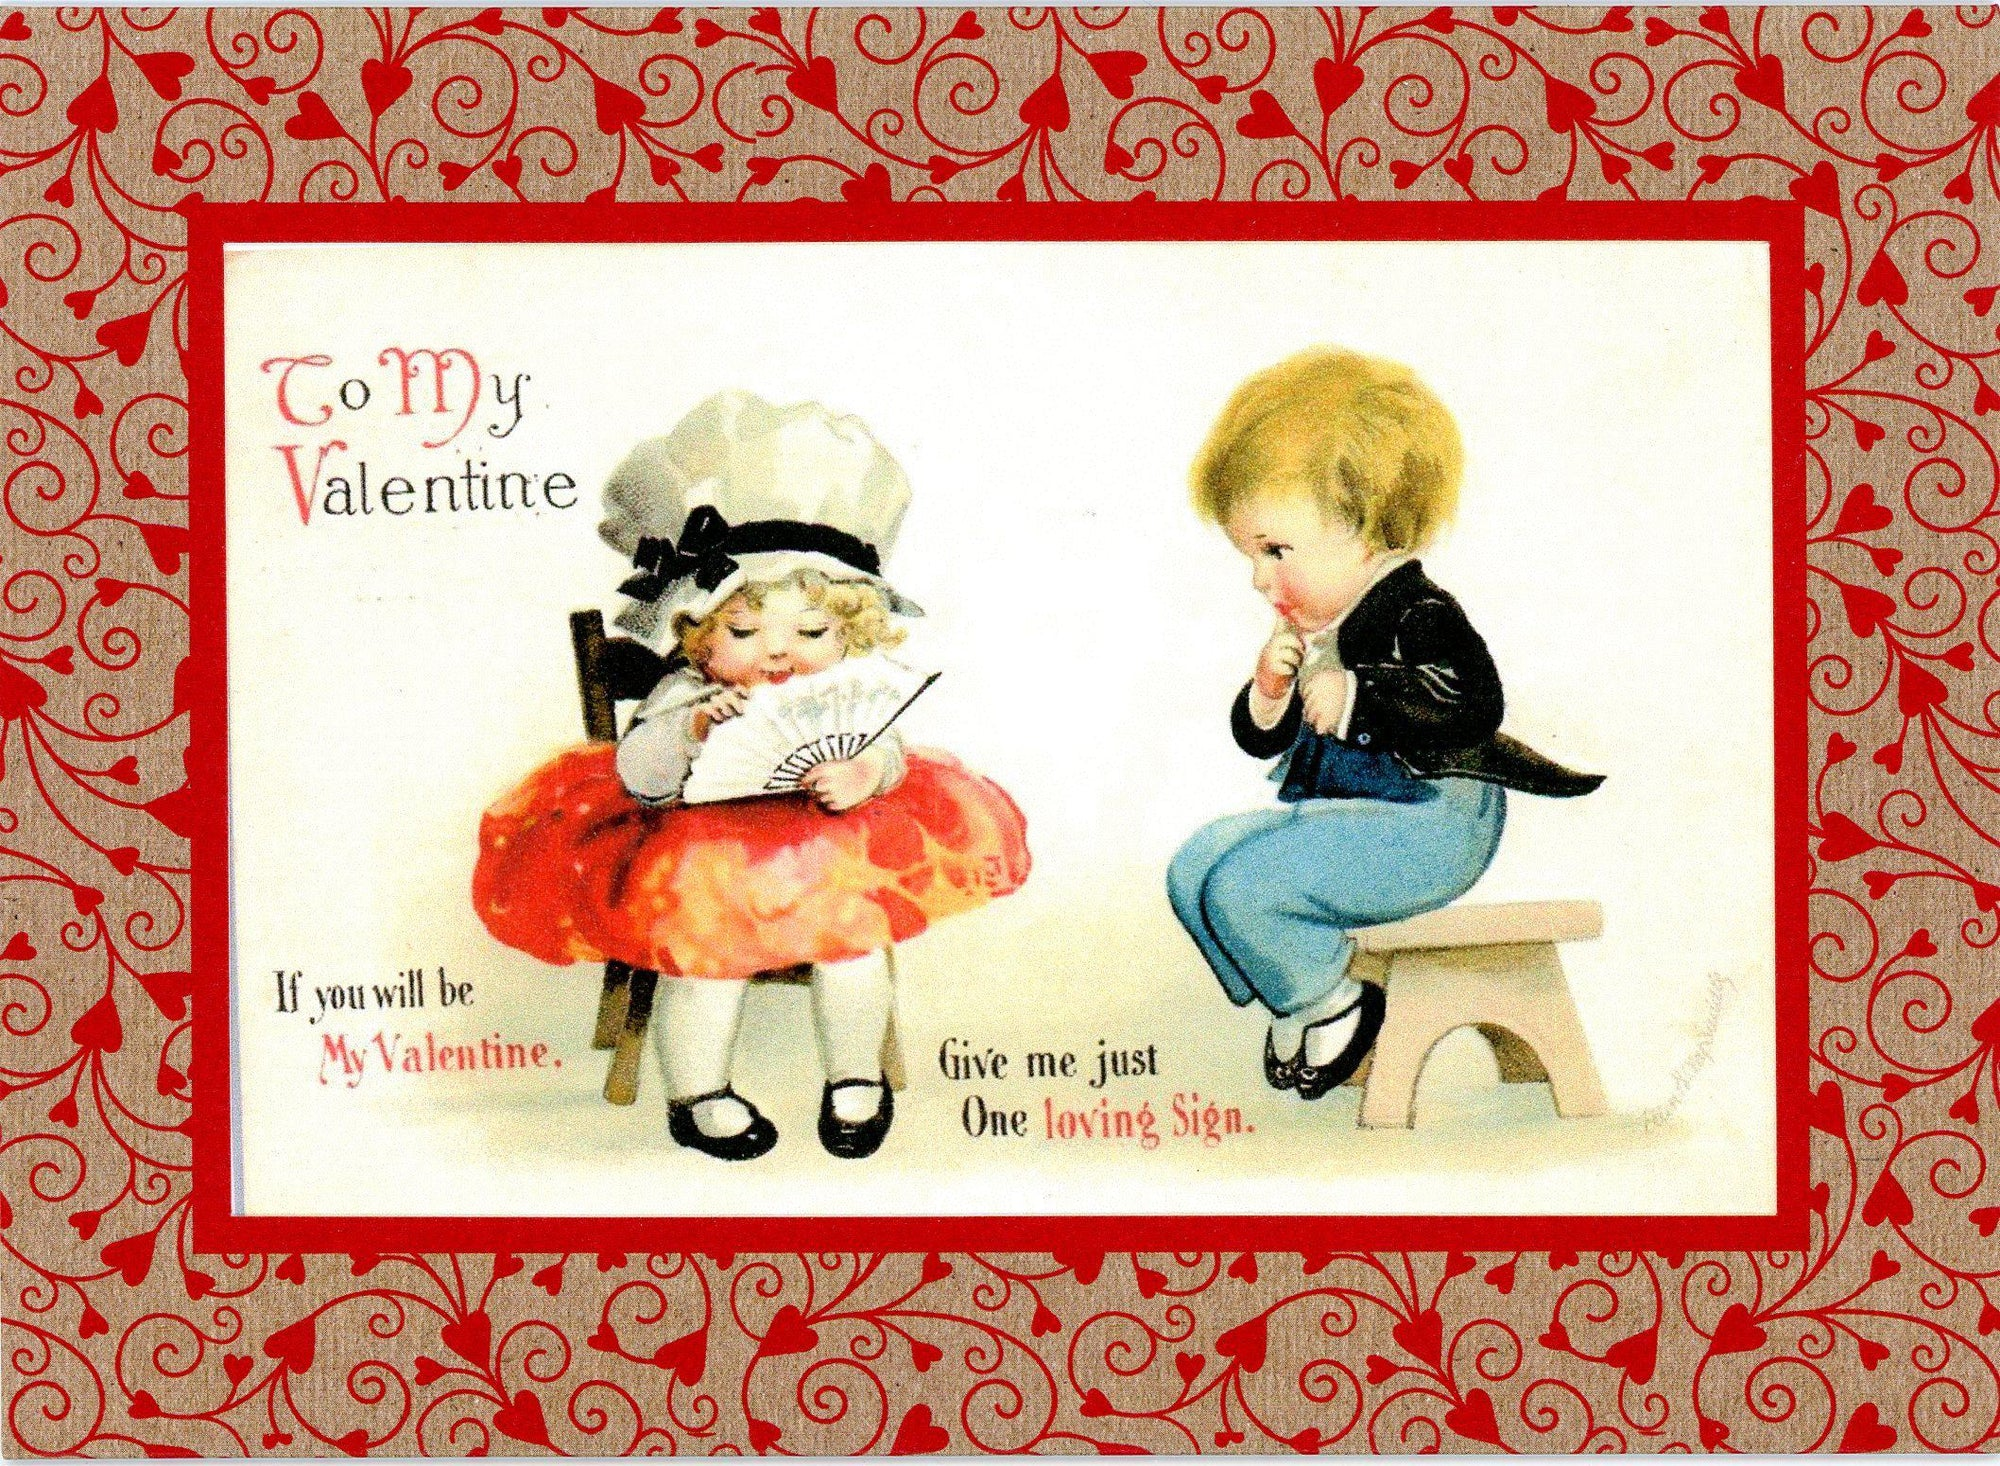 If You Will Be My Valentine-Greetings from the Past-Plymouth Cards